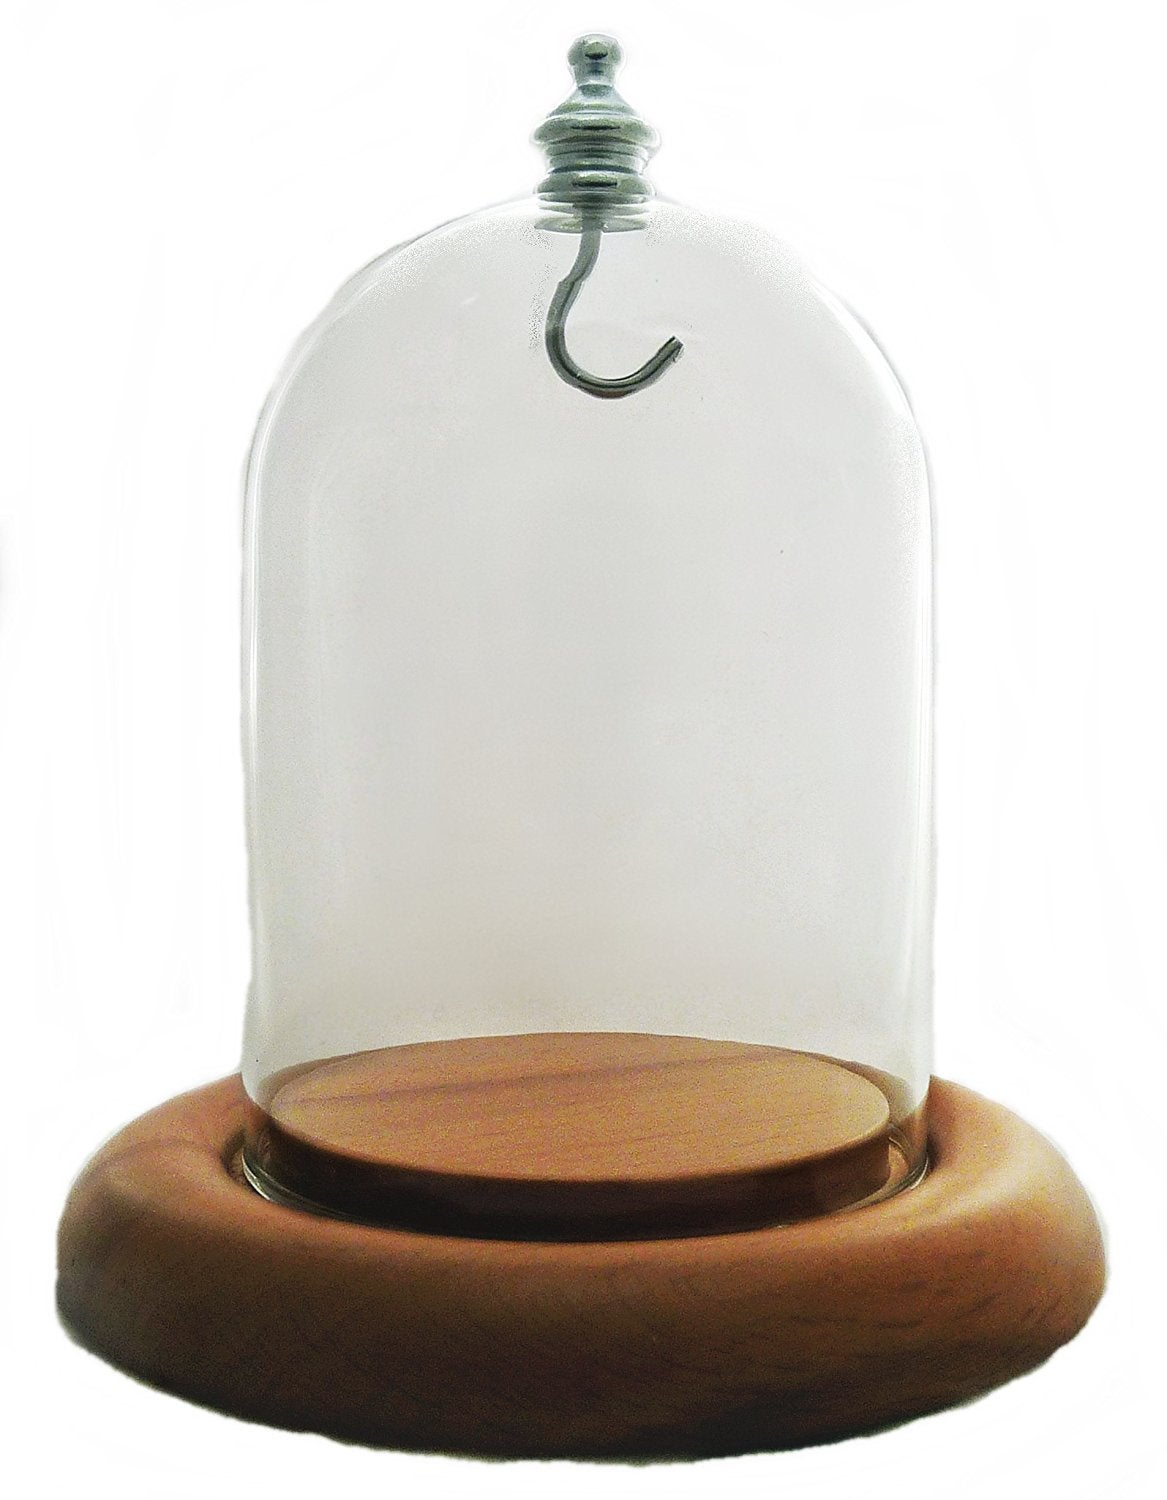 Image of Dueber Pocket Watch Glass Display Dome with Silver Knob & Hook, Oak Base 3″x4″ DBR31SOKH